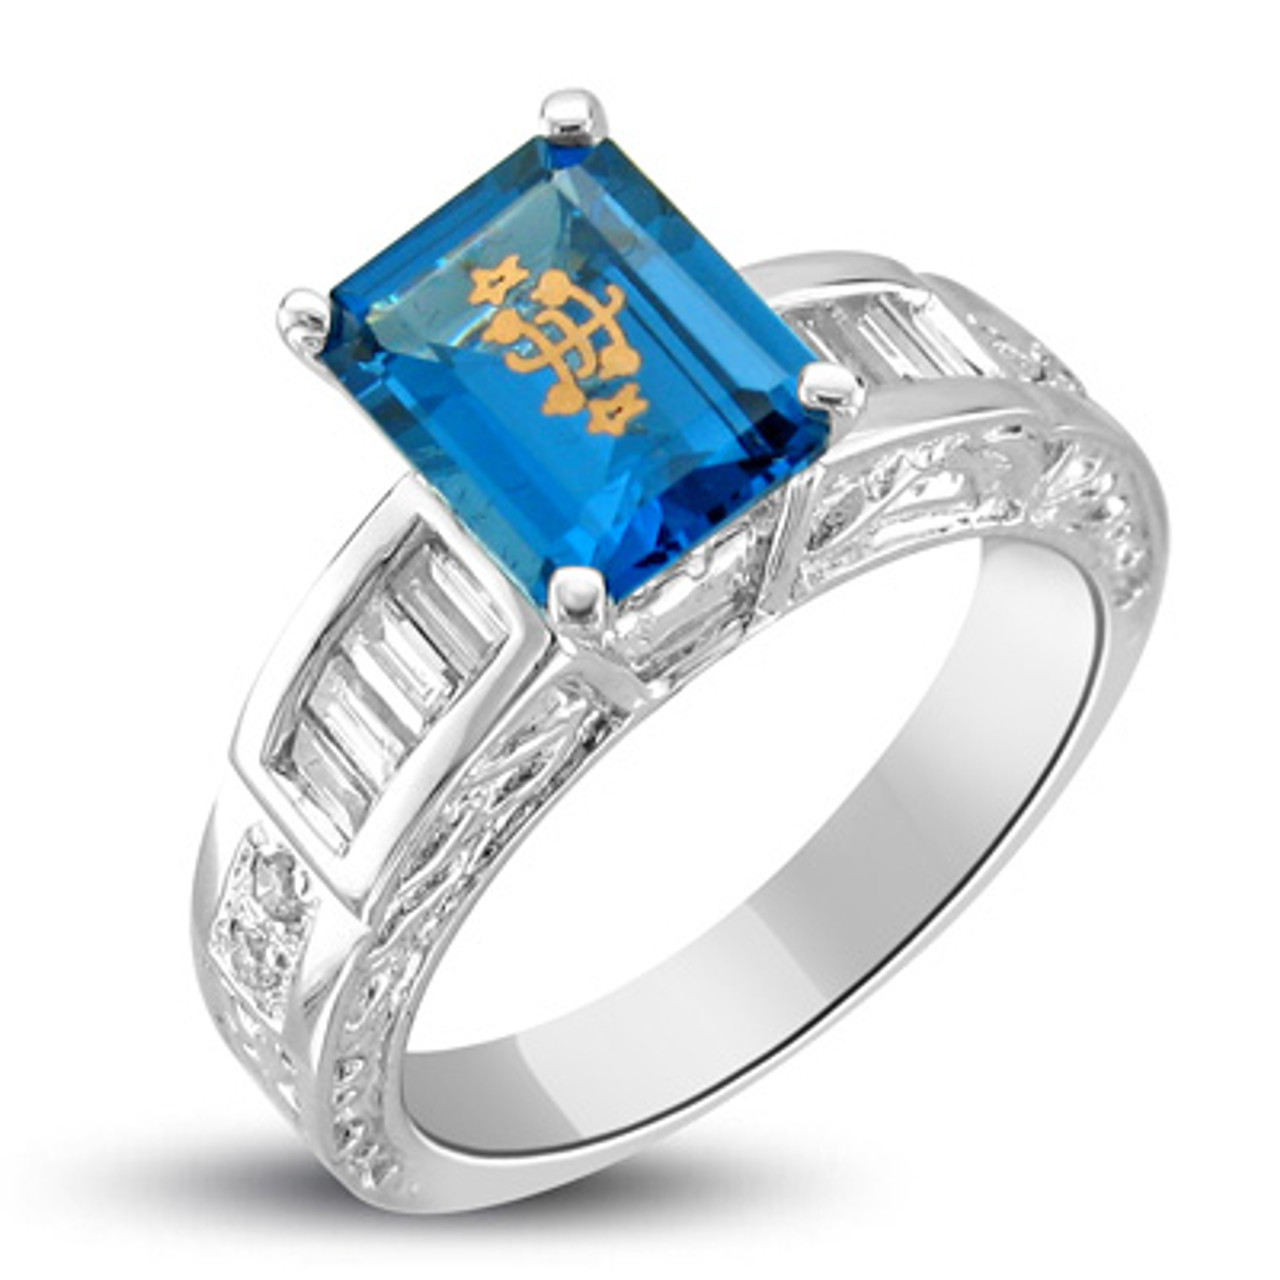 14k White Gold Baguette Carved Blue Emerald Cut Baha I Ringstone